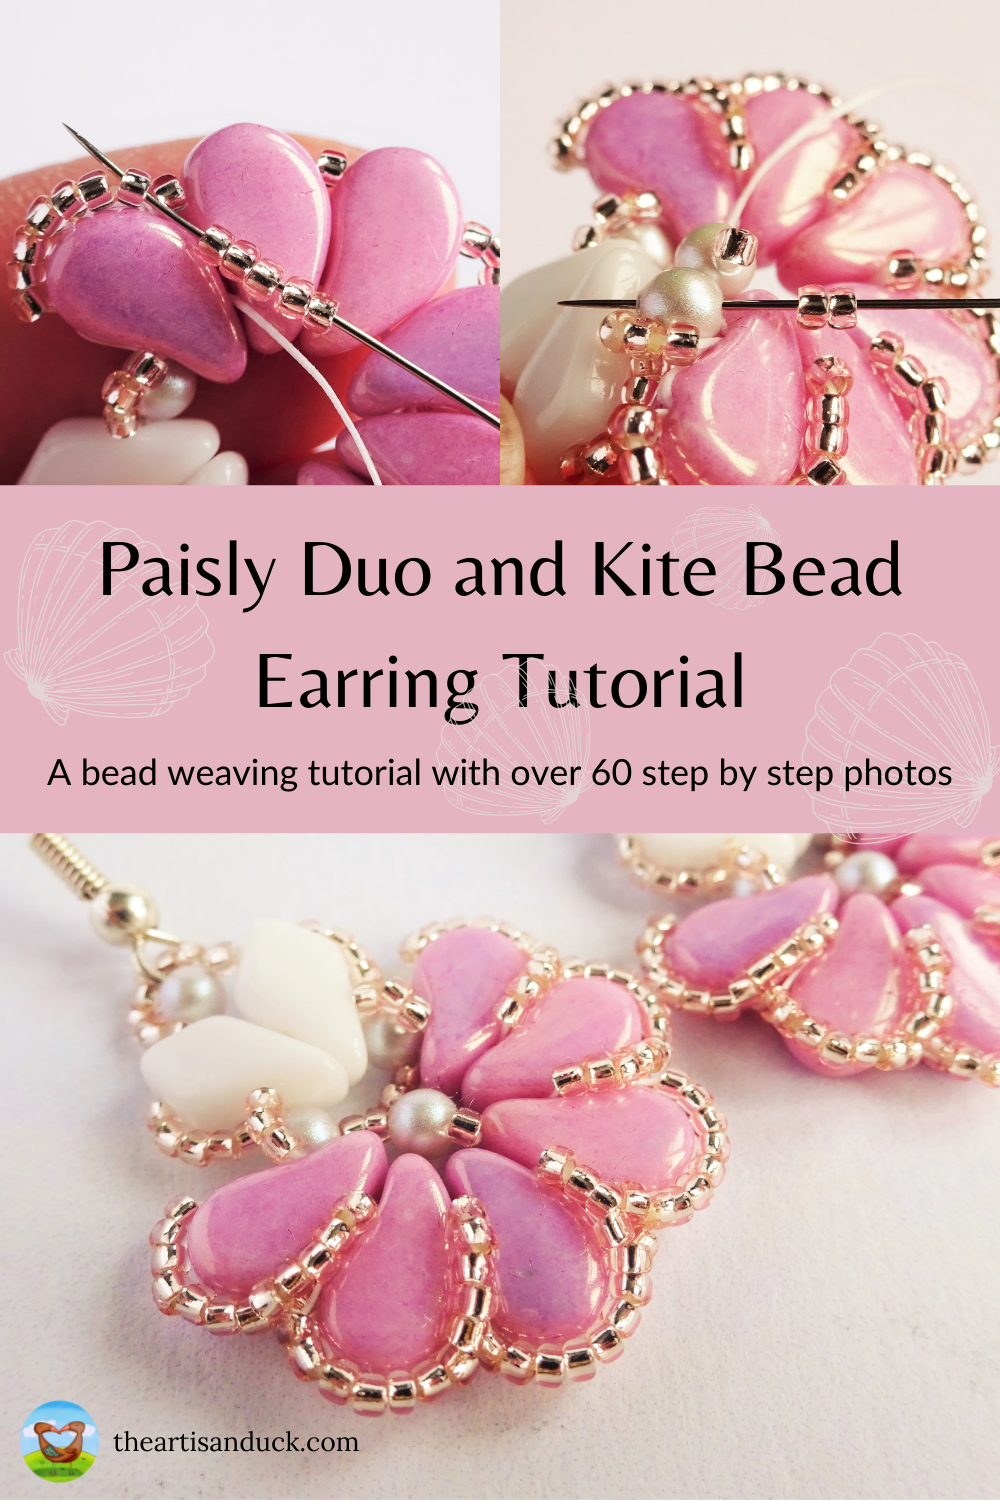 Paisly-Duo-and-Kite-Bead-Earring-Tutorial